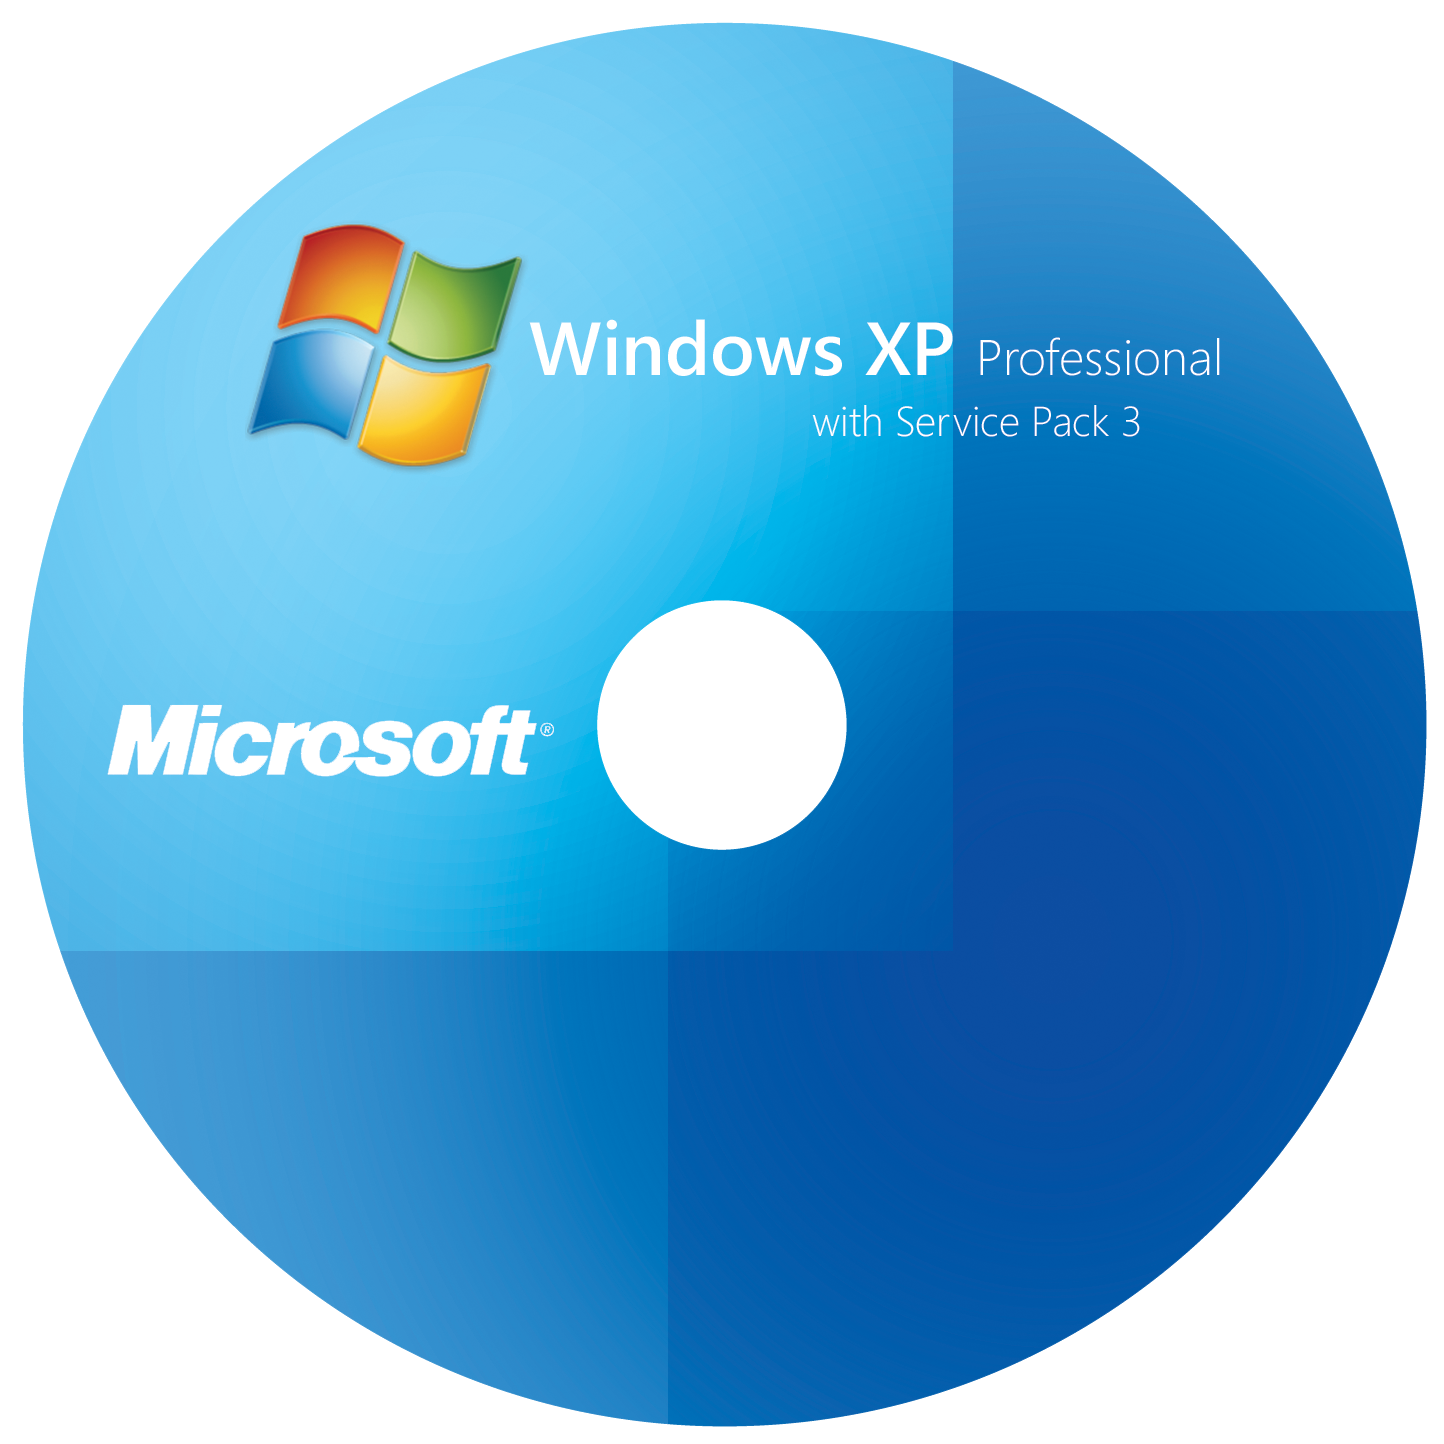 Windows Xp Service Pack 3 Full version With Product key ...